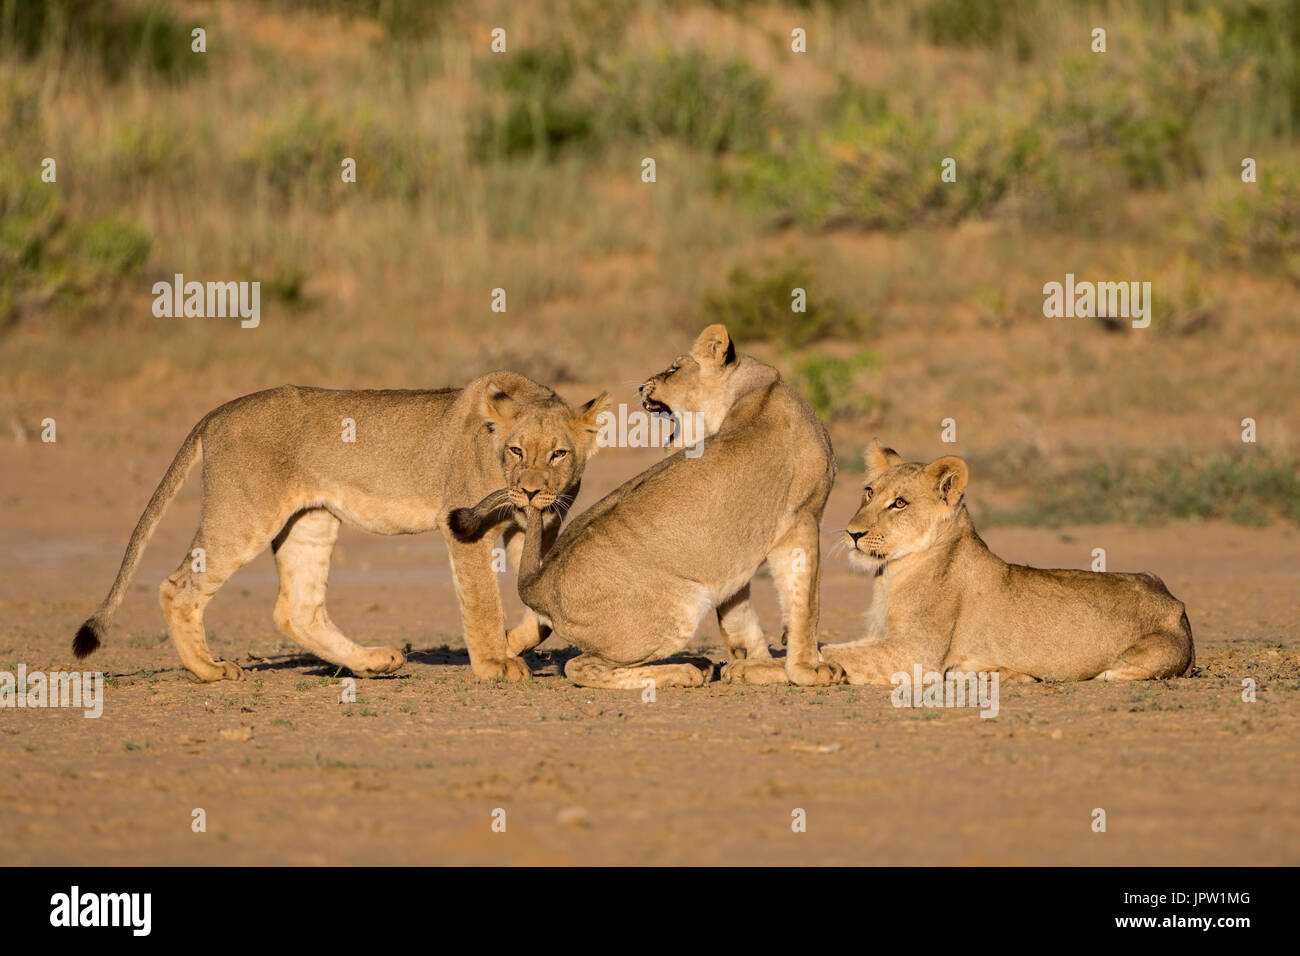 Young lions (Panthera leo) playing, Kgalagadi transfrontier park, Northern Cape, South Africa, February 2017 - Stock Image